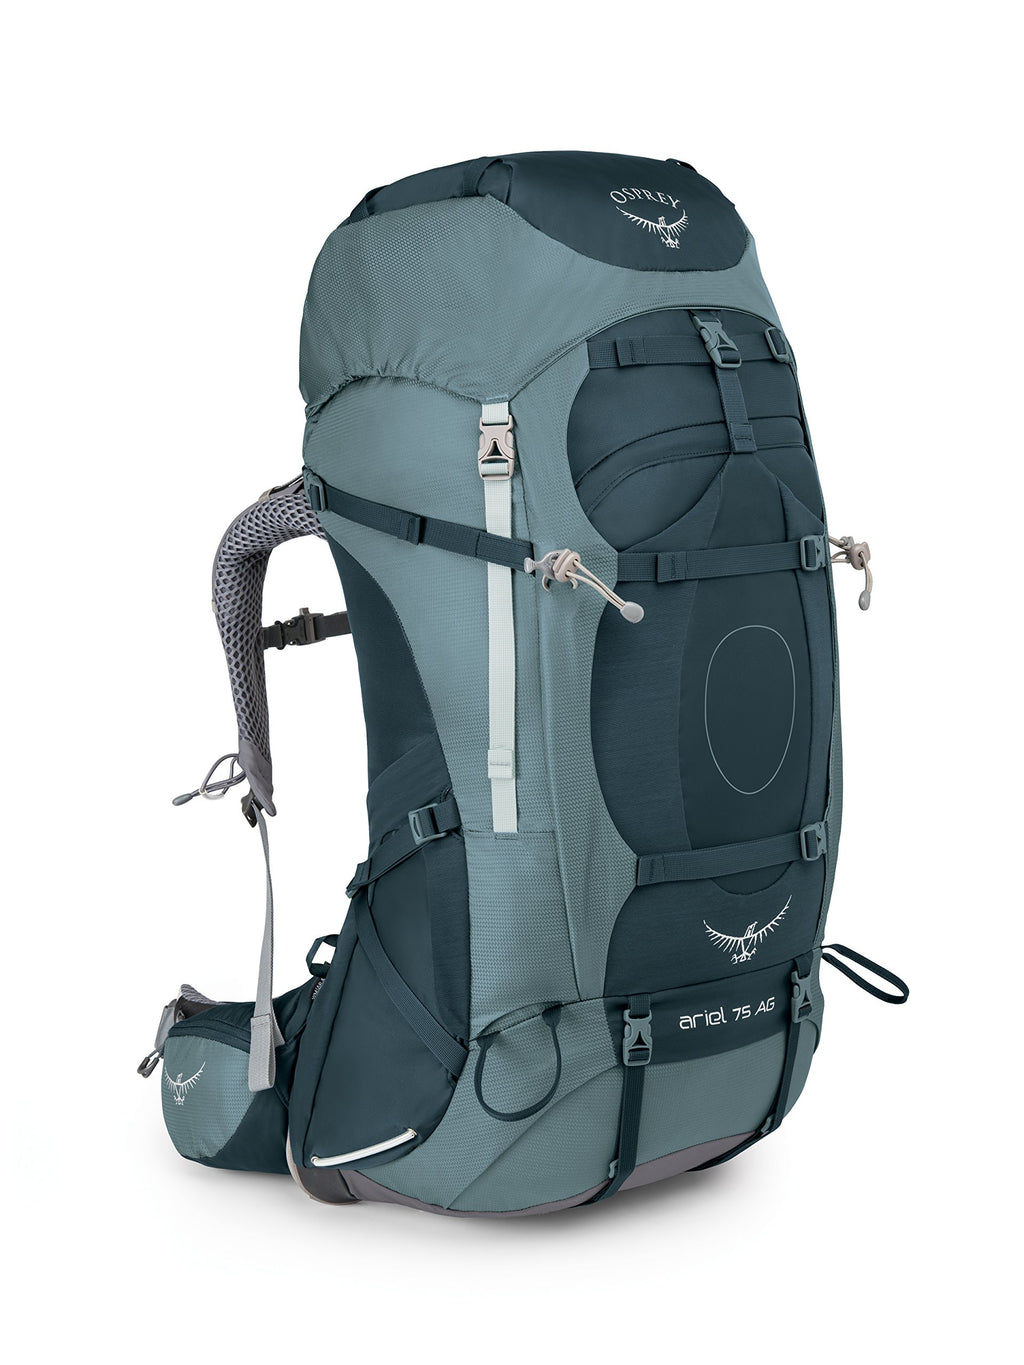 Osprey Packs Women's Ariel AG 75 Backpack, Boothbay Grey, Medium